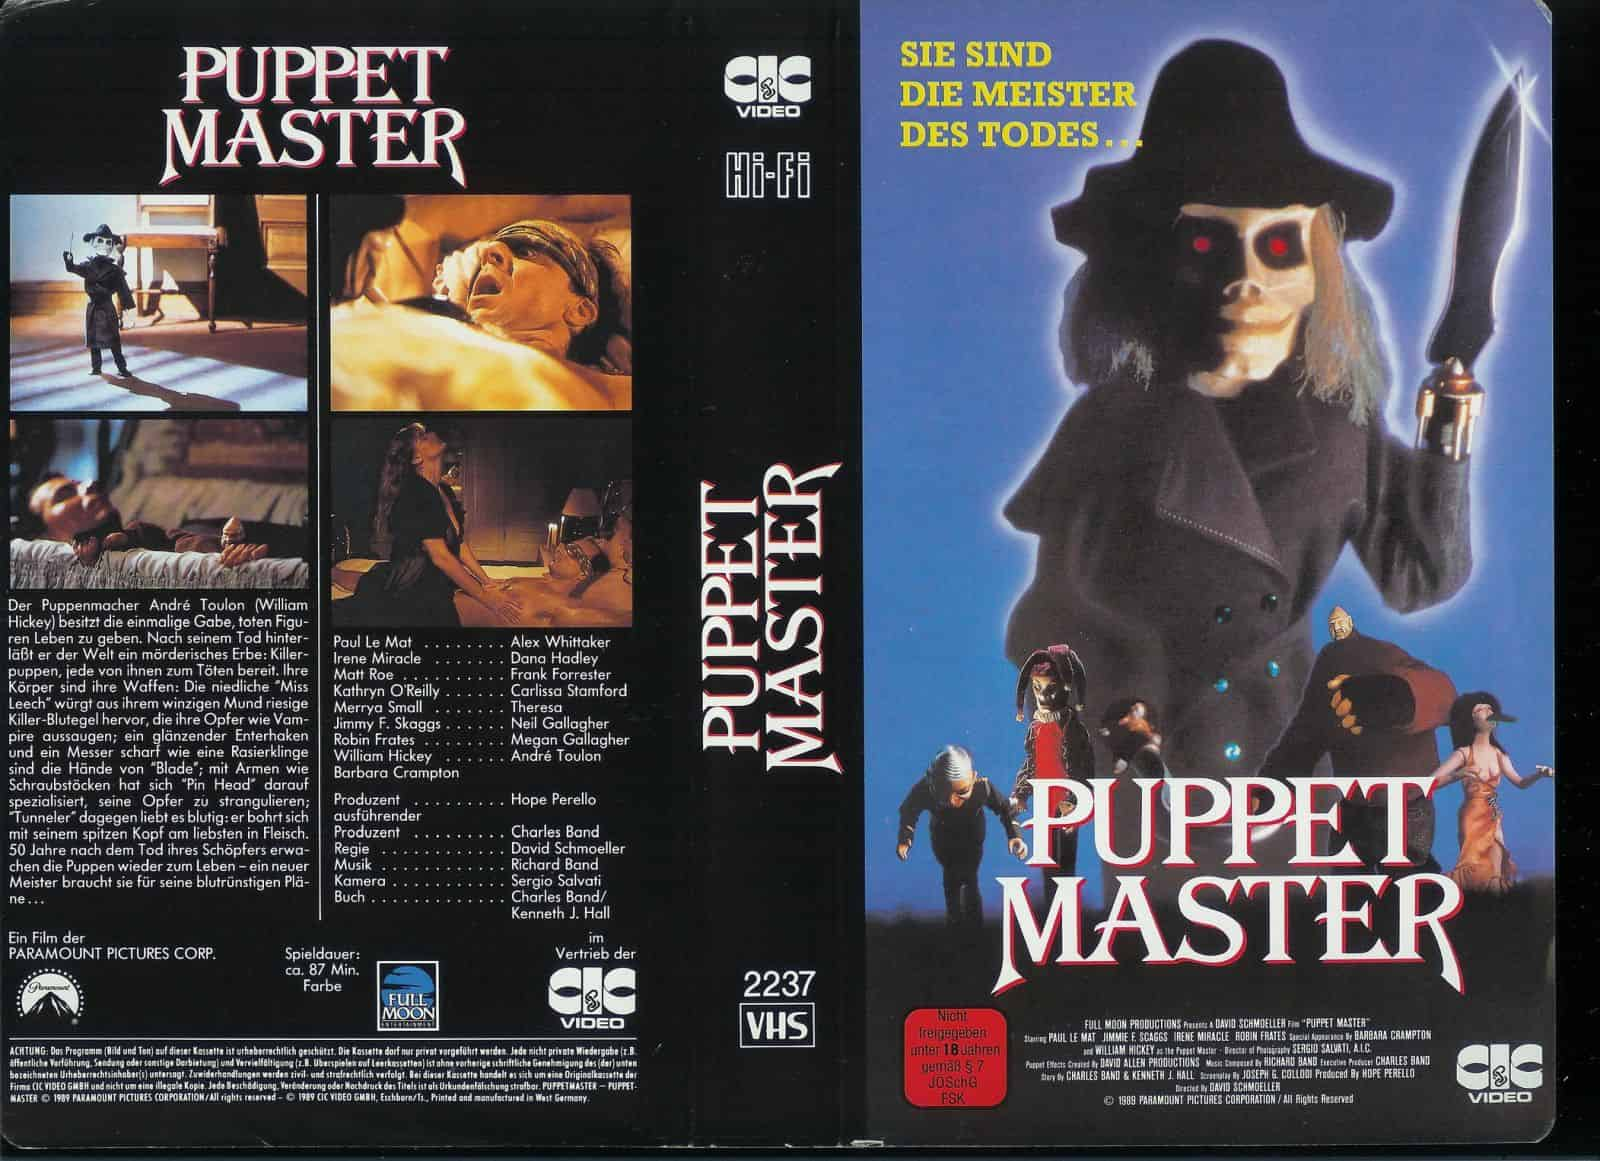 Mike's Review: Puppet Master (1989)